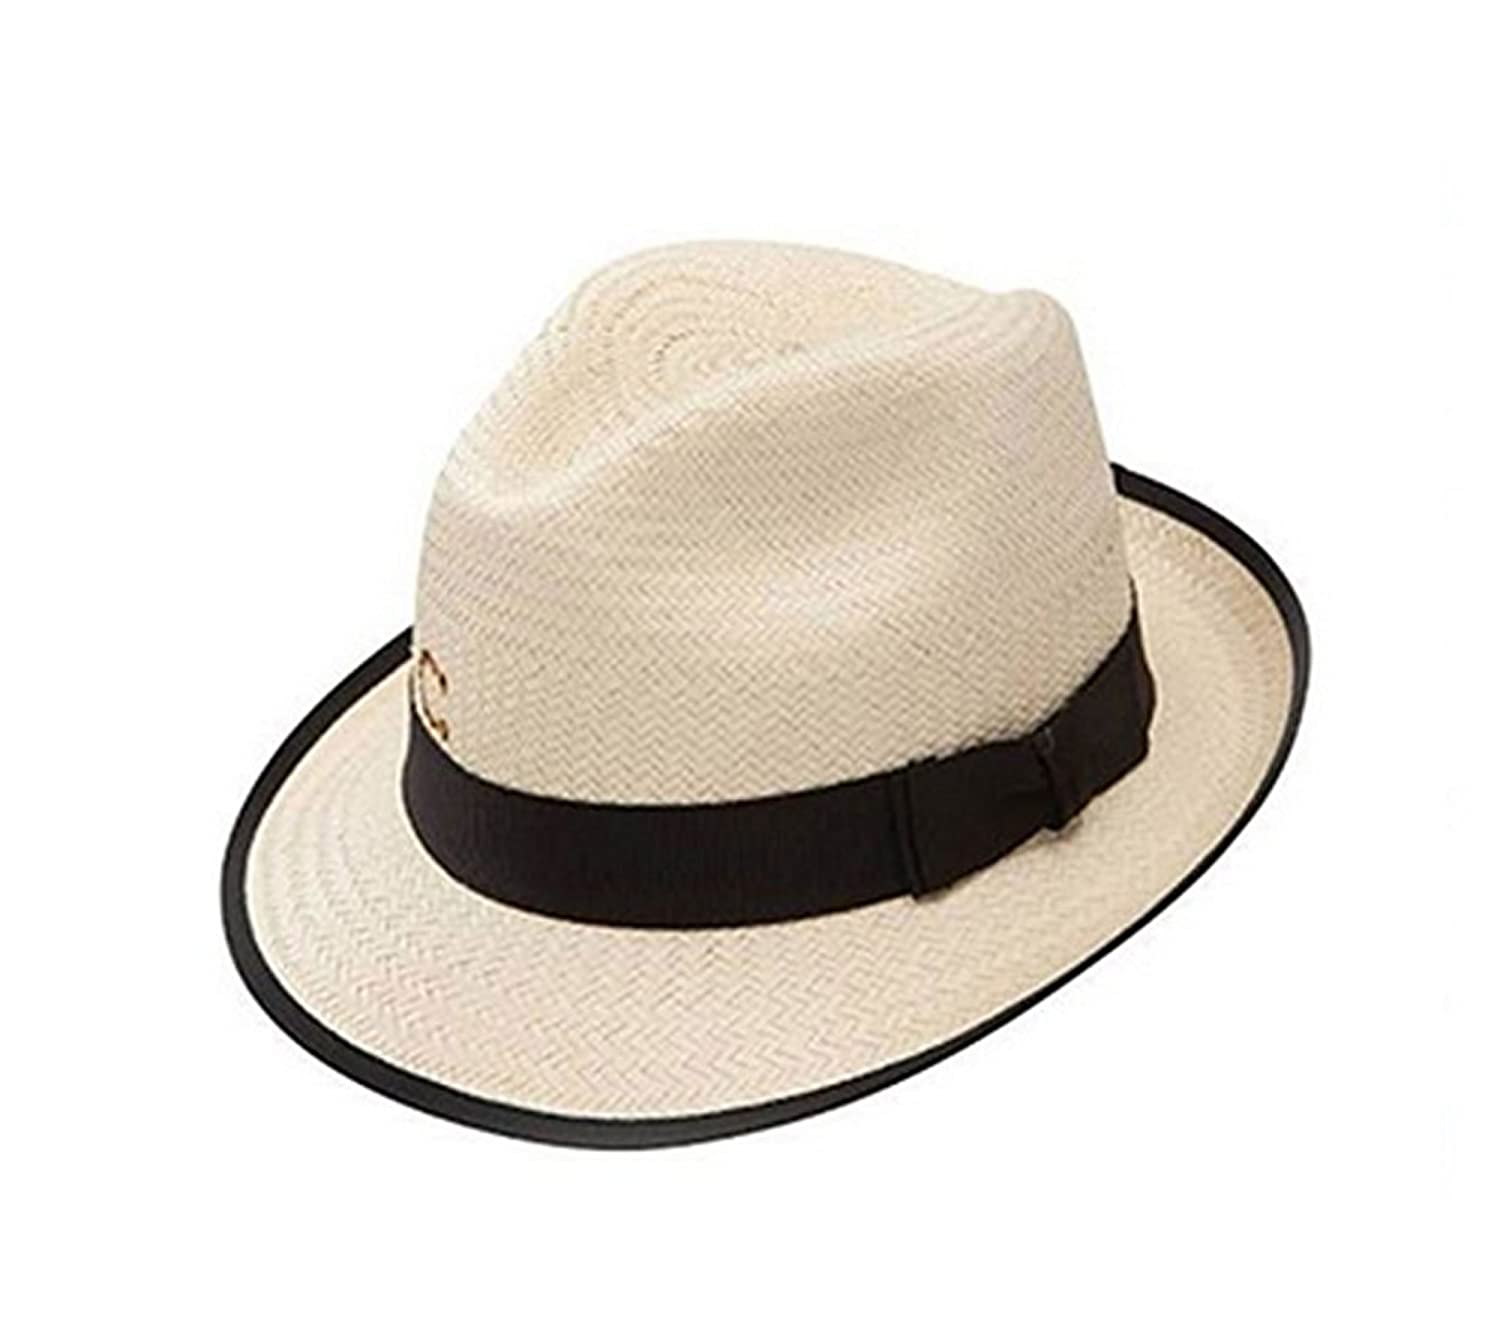 Charlie 1 Horse Playa Mexican Palm Fedora Hat